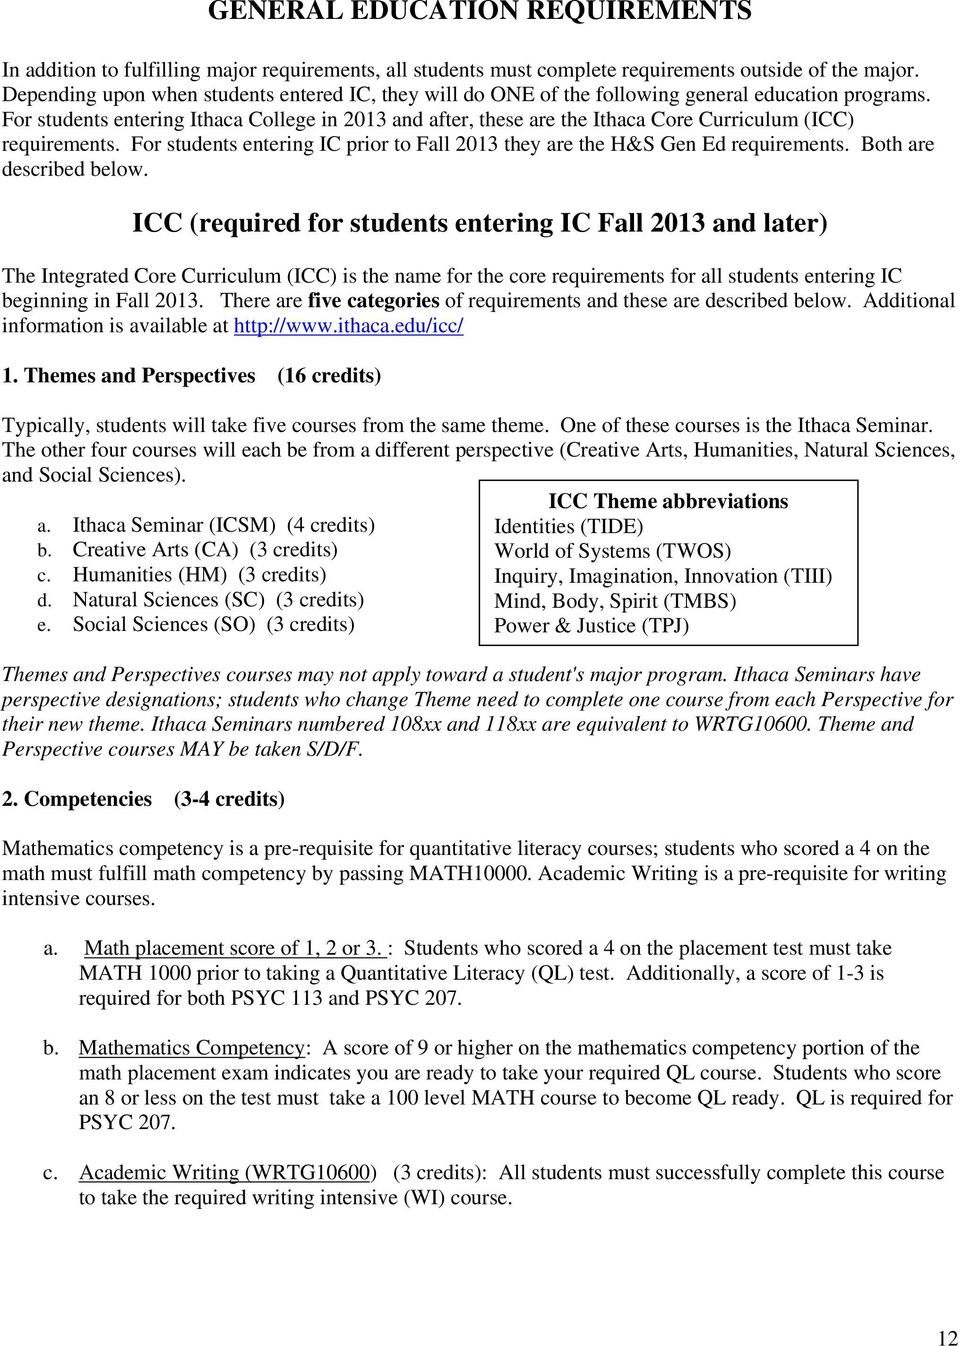 For students entering Ithaca College in 2013 and after, these are the Ithaca Core Curriculum (ICC) requirements. For students entering IC prior to Fall 2013 they are the H&S Gen Ed requirements.